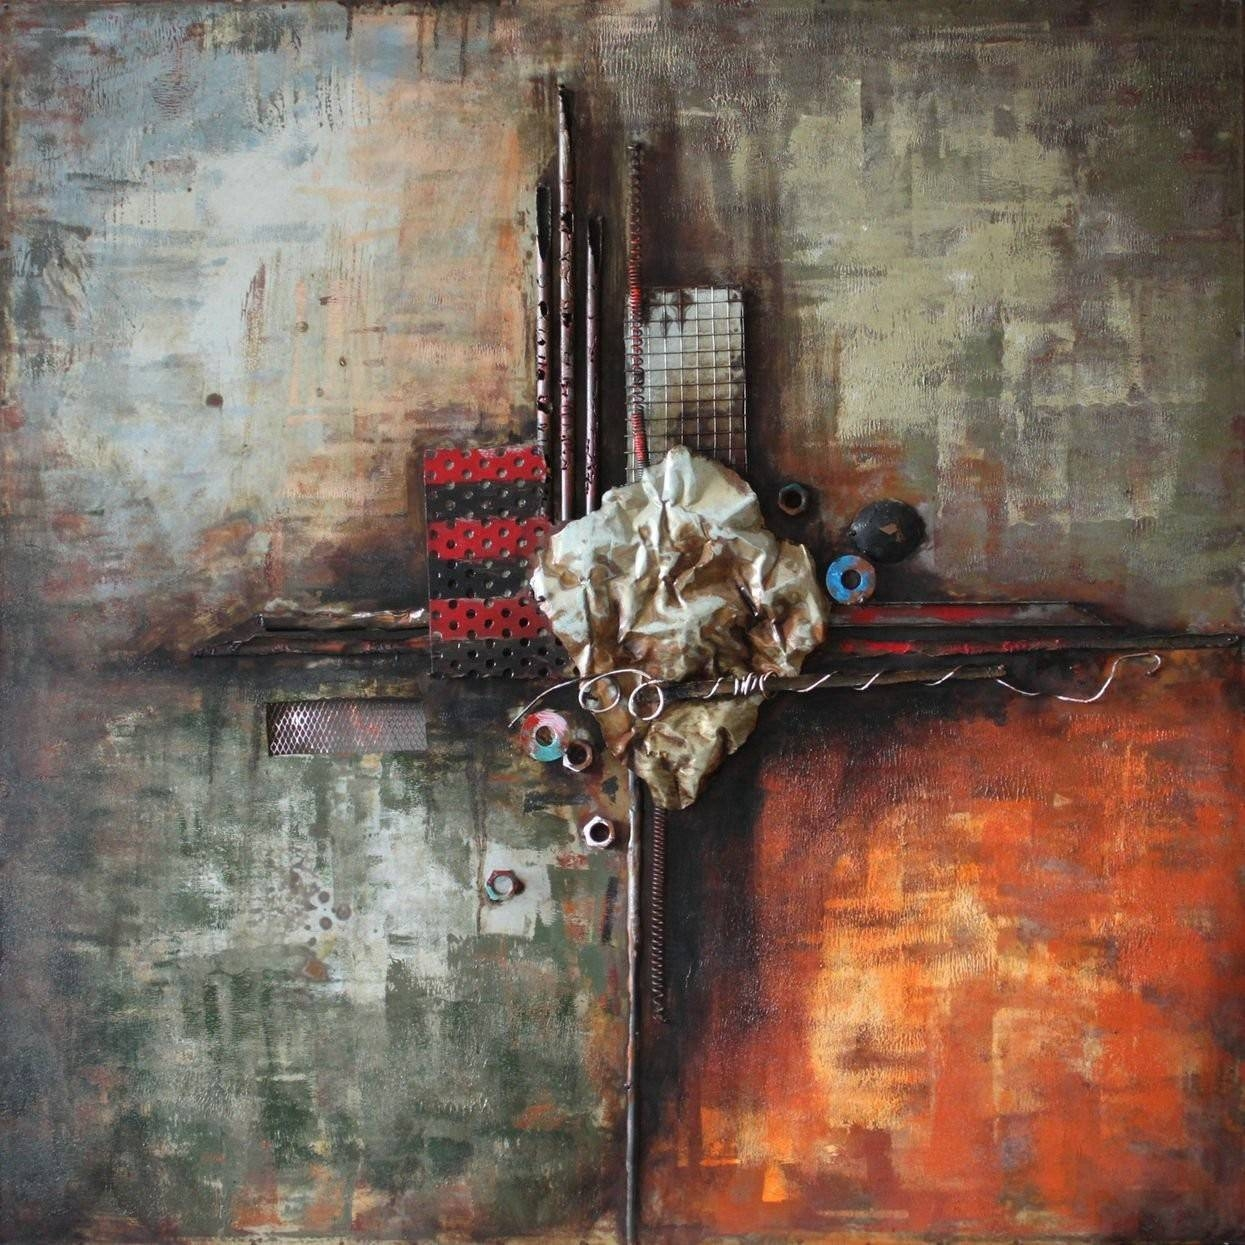 Abstract 4 3d Metal Wall Art Hand Painted – Metal Wall Art Regarding Latest Painted Metal Wall Art (Gallery 15 of 20)